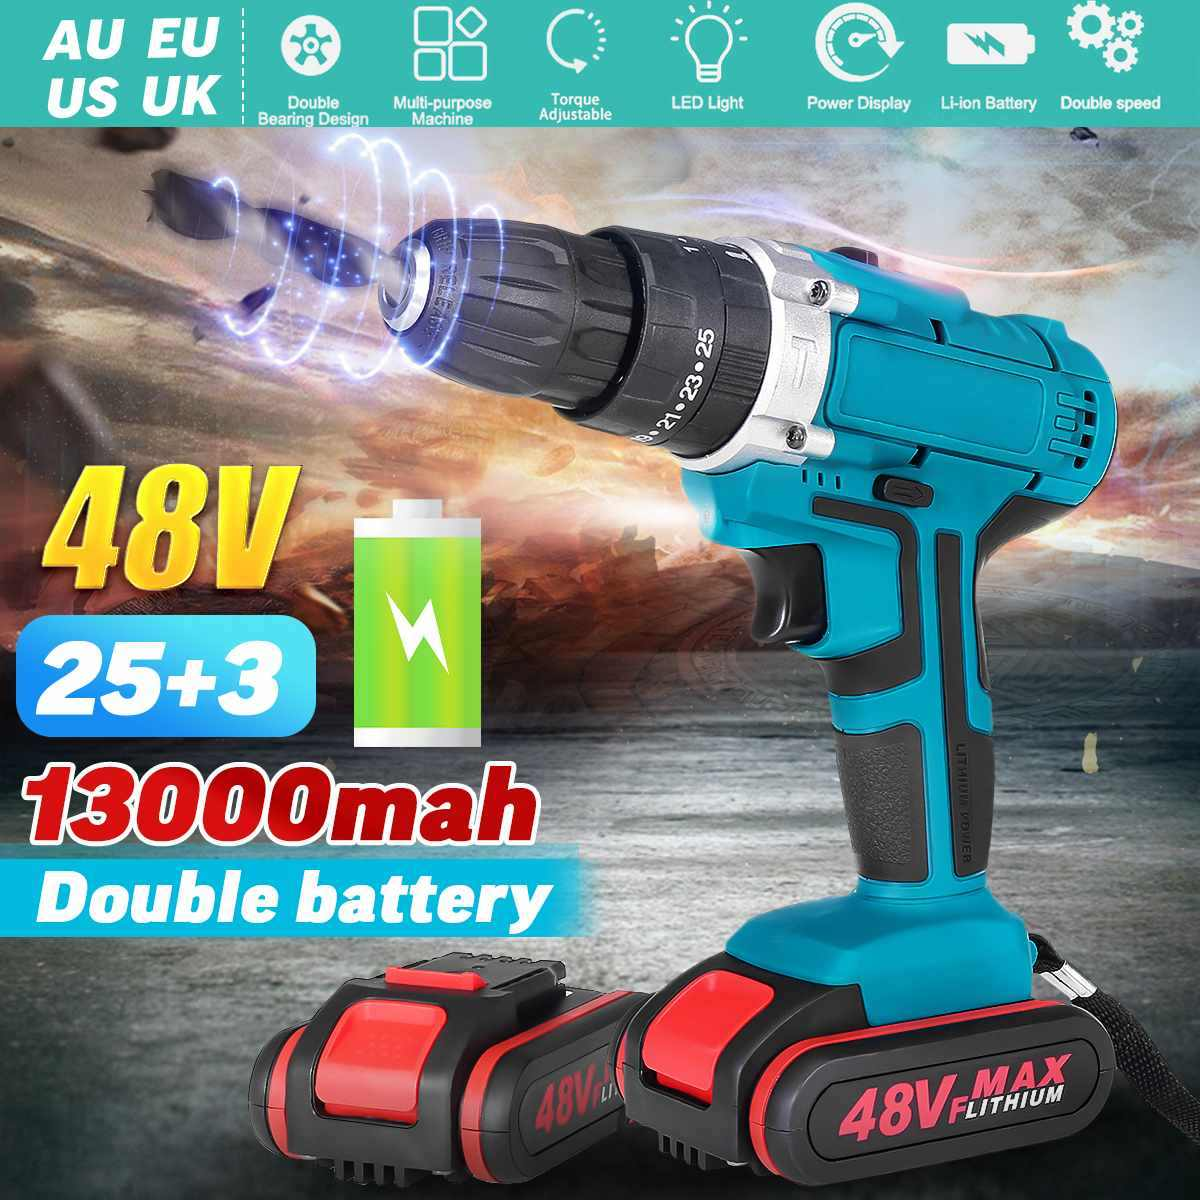 25+3 Torque 48V Cordless Electric Impact Drill Li-ion Battery LED Working Light Screwdriver DIY Home Hand Flat Drill Power Tools